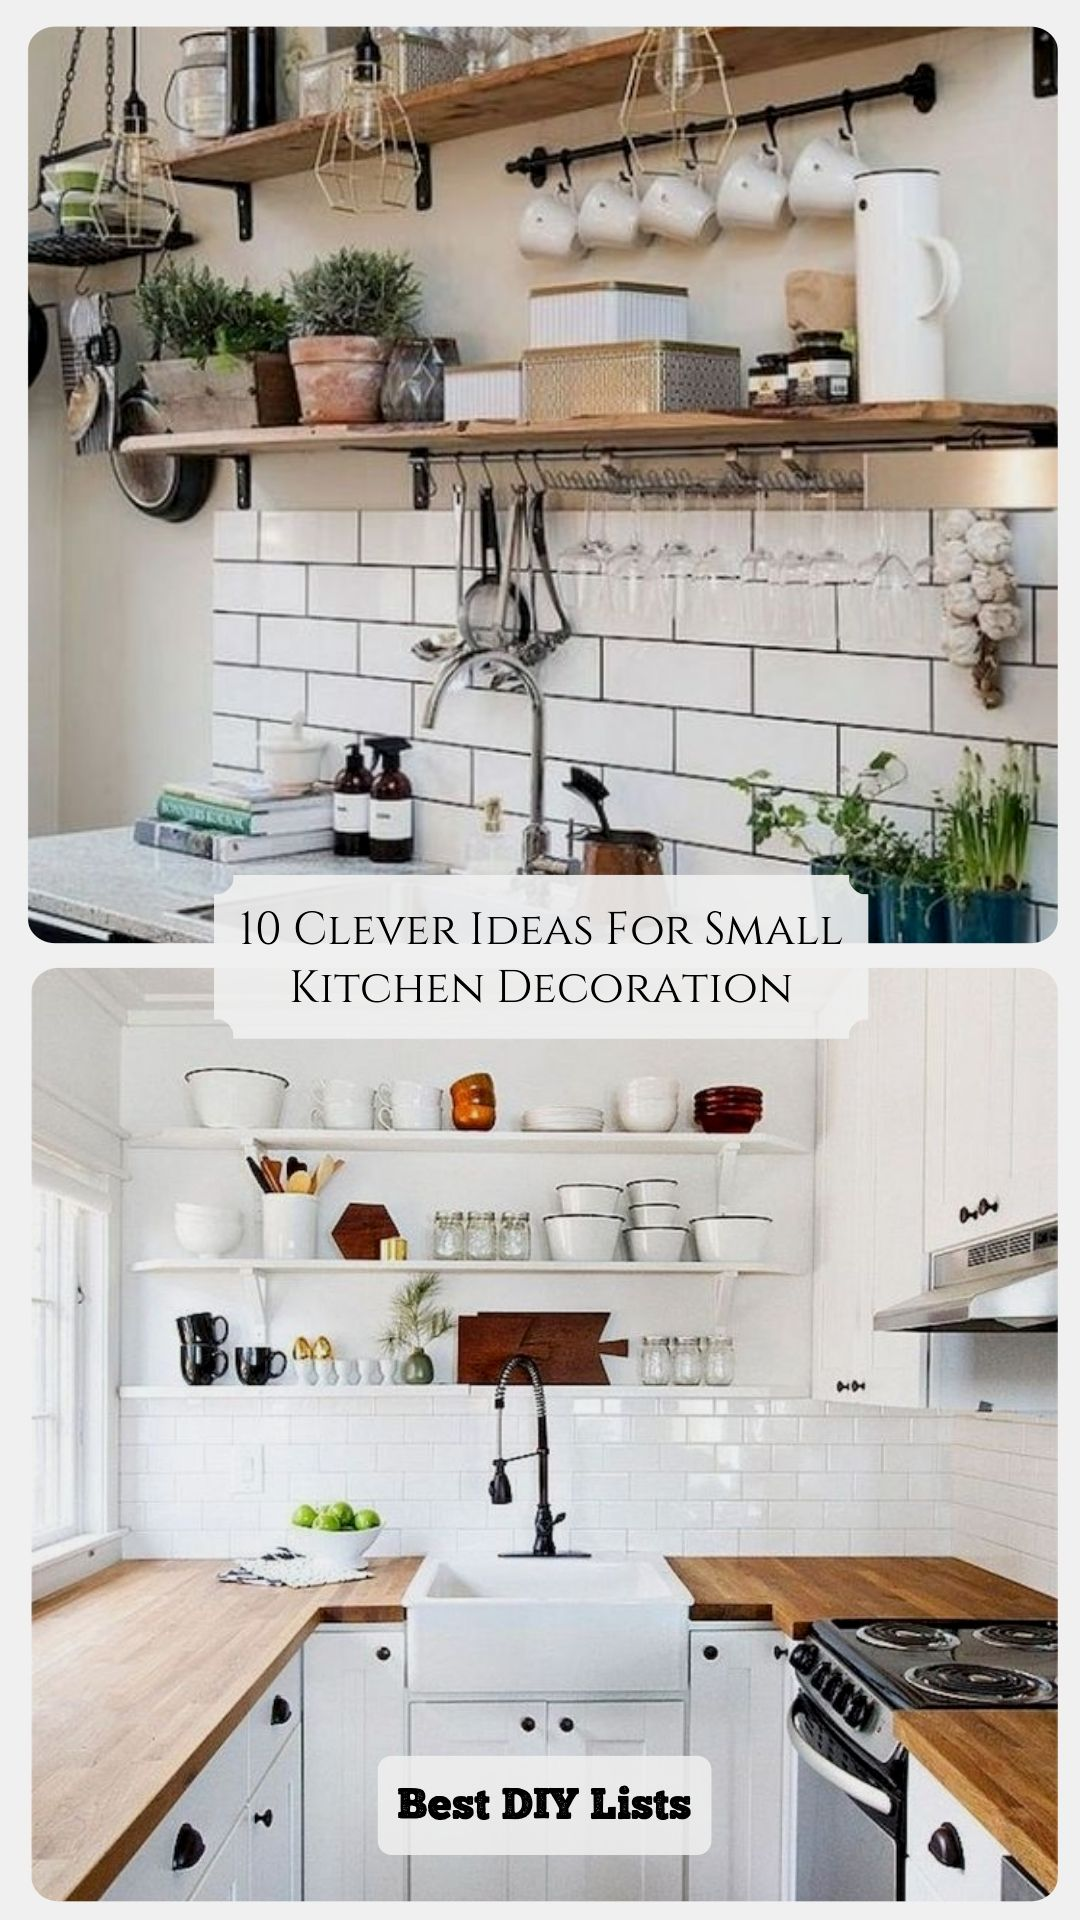 10 Clever Ideas For Small Kitchen Decoration Home Decor Kitchen Kitchen Decor Small Kitchen Decor